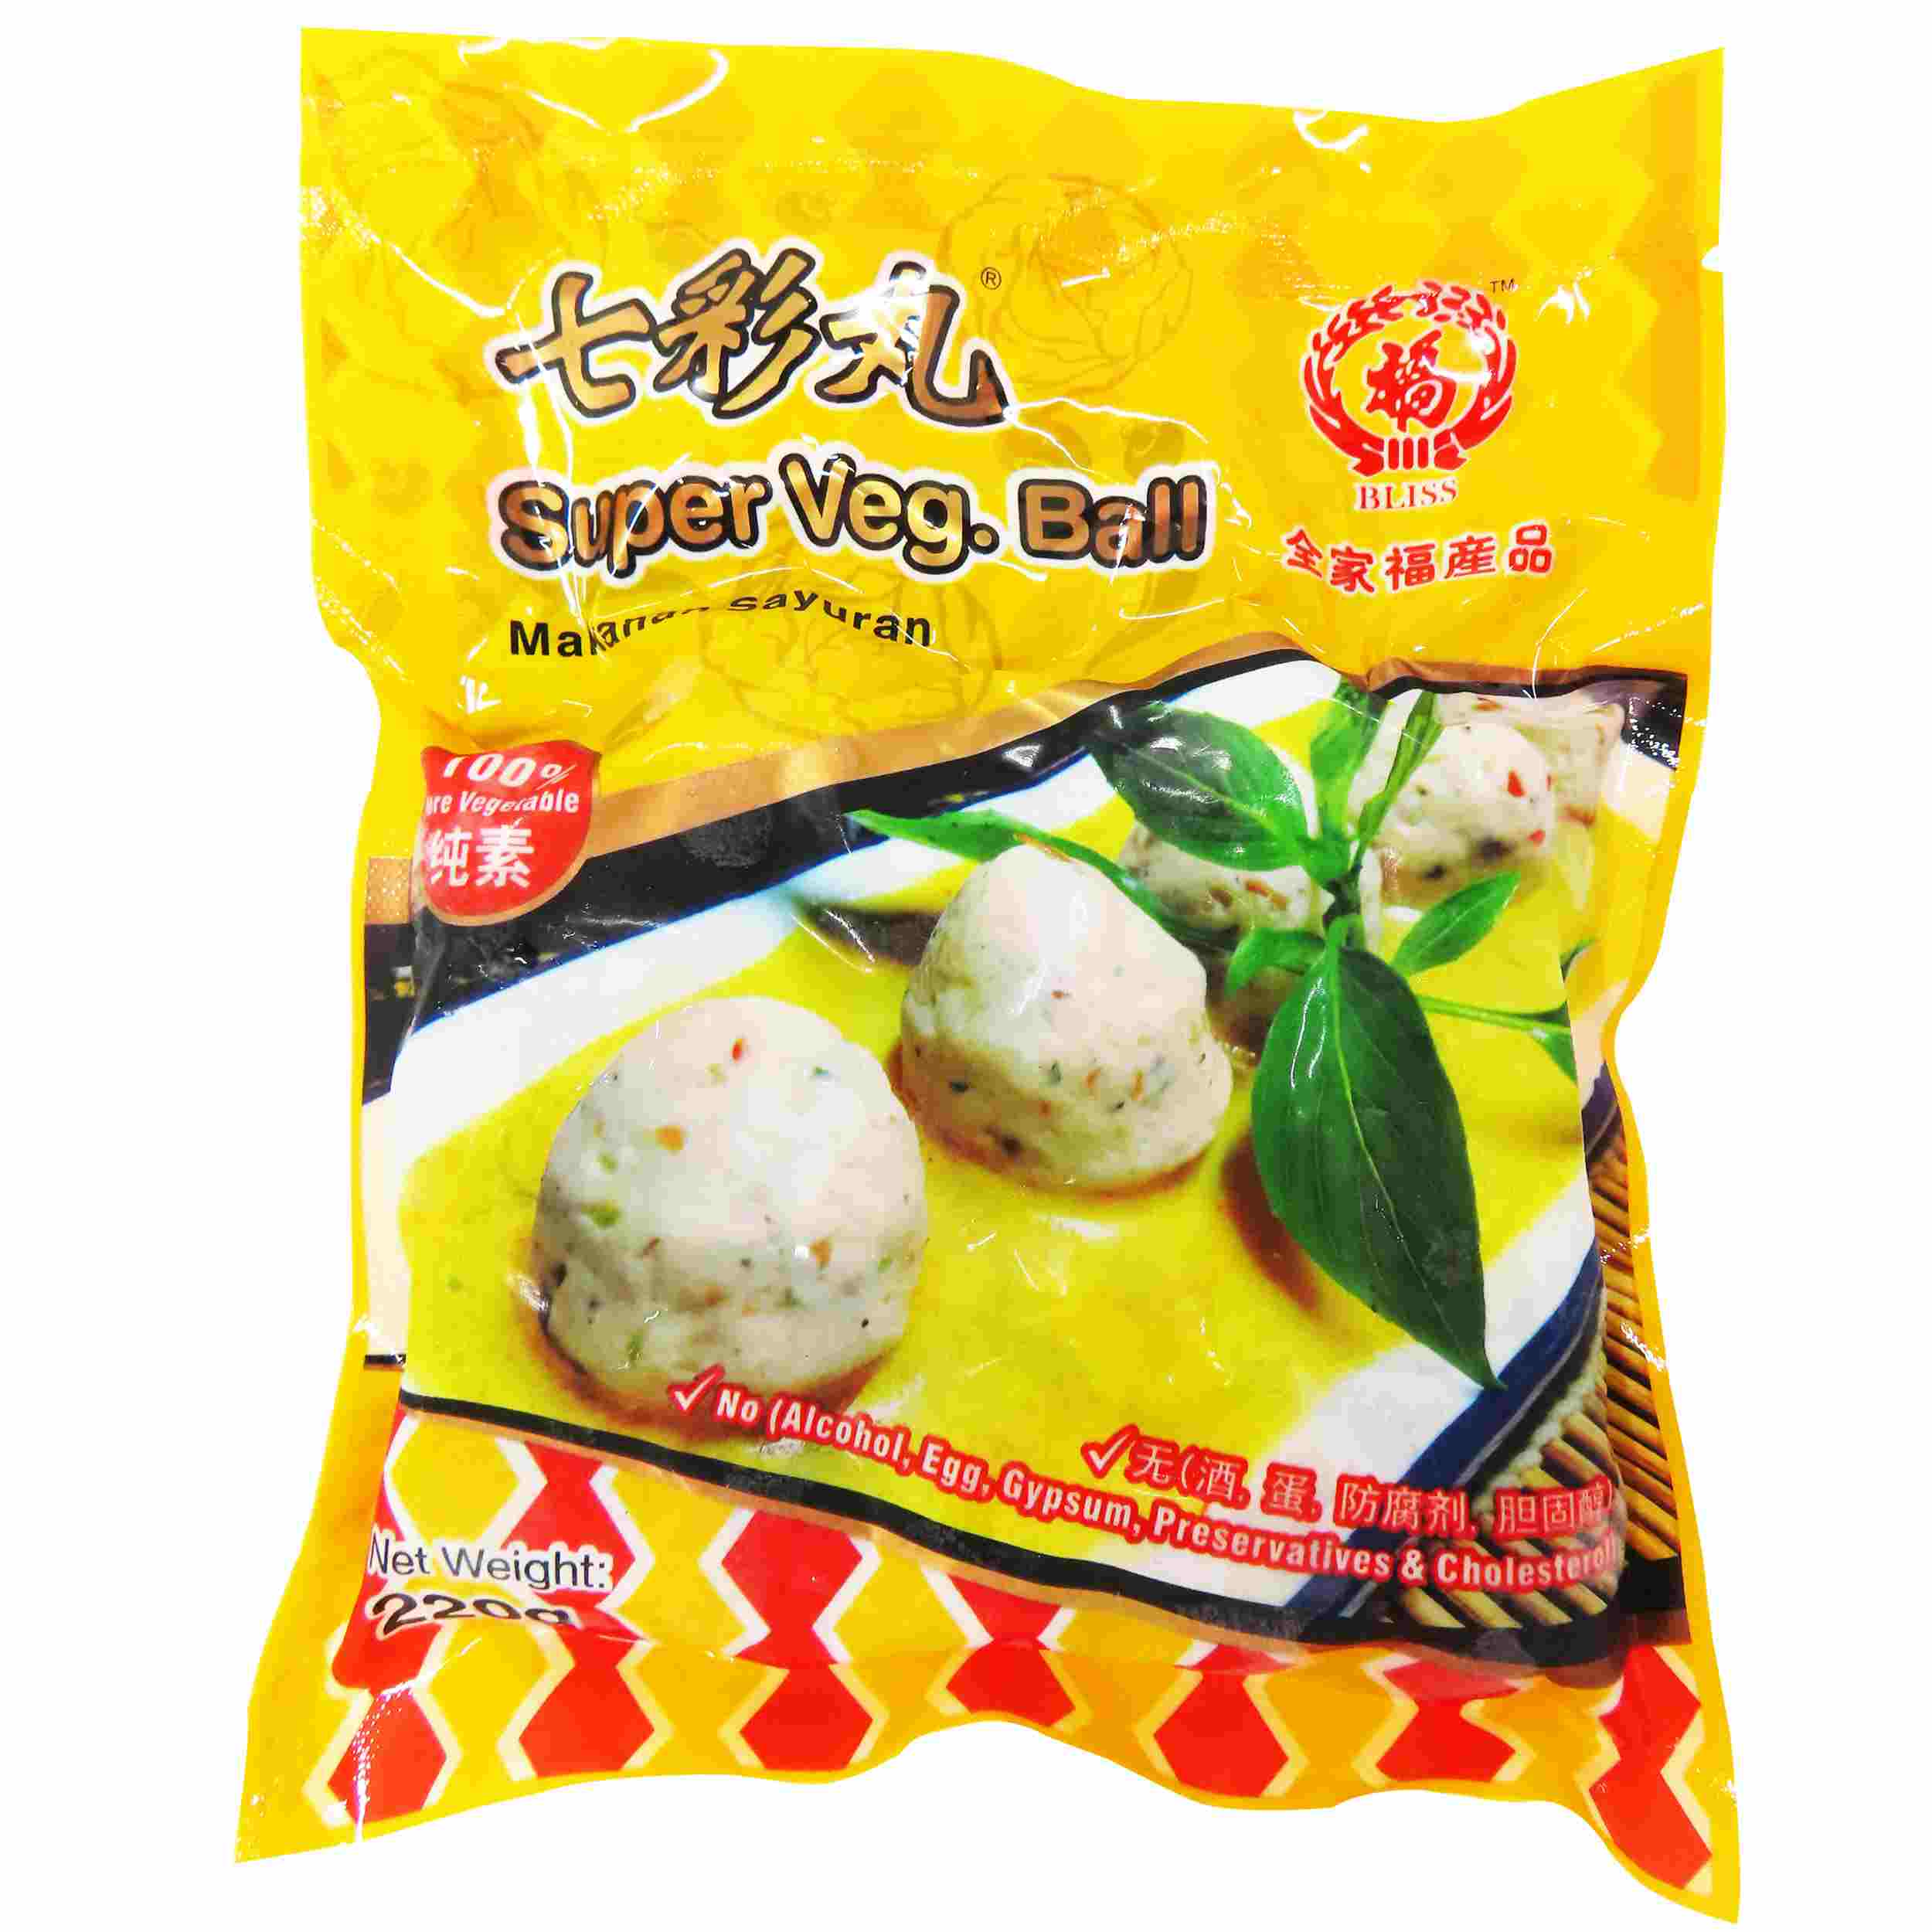 Image Colourful Fishball Super Veg. Ball 全家福-七彩鱼丸 220grams